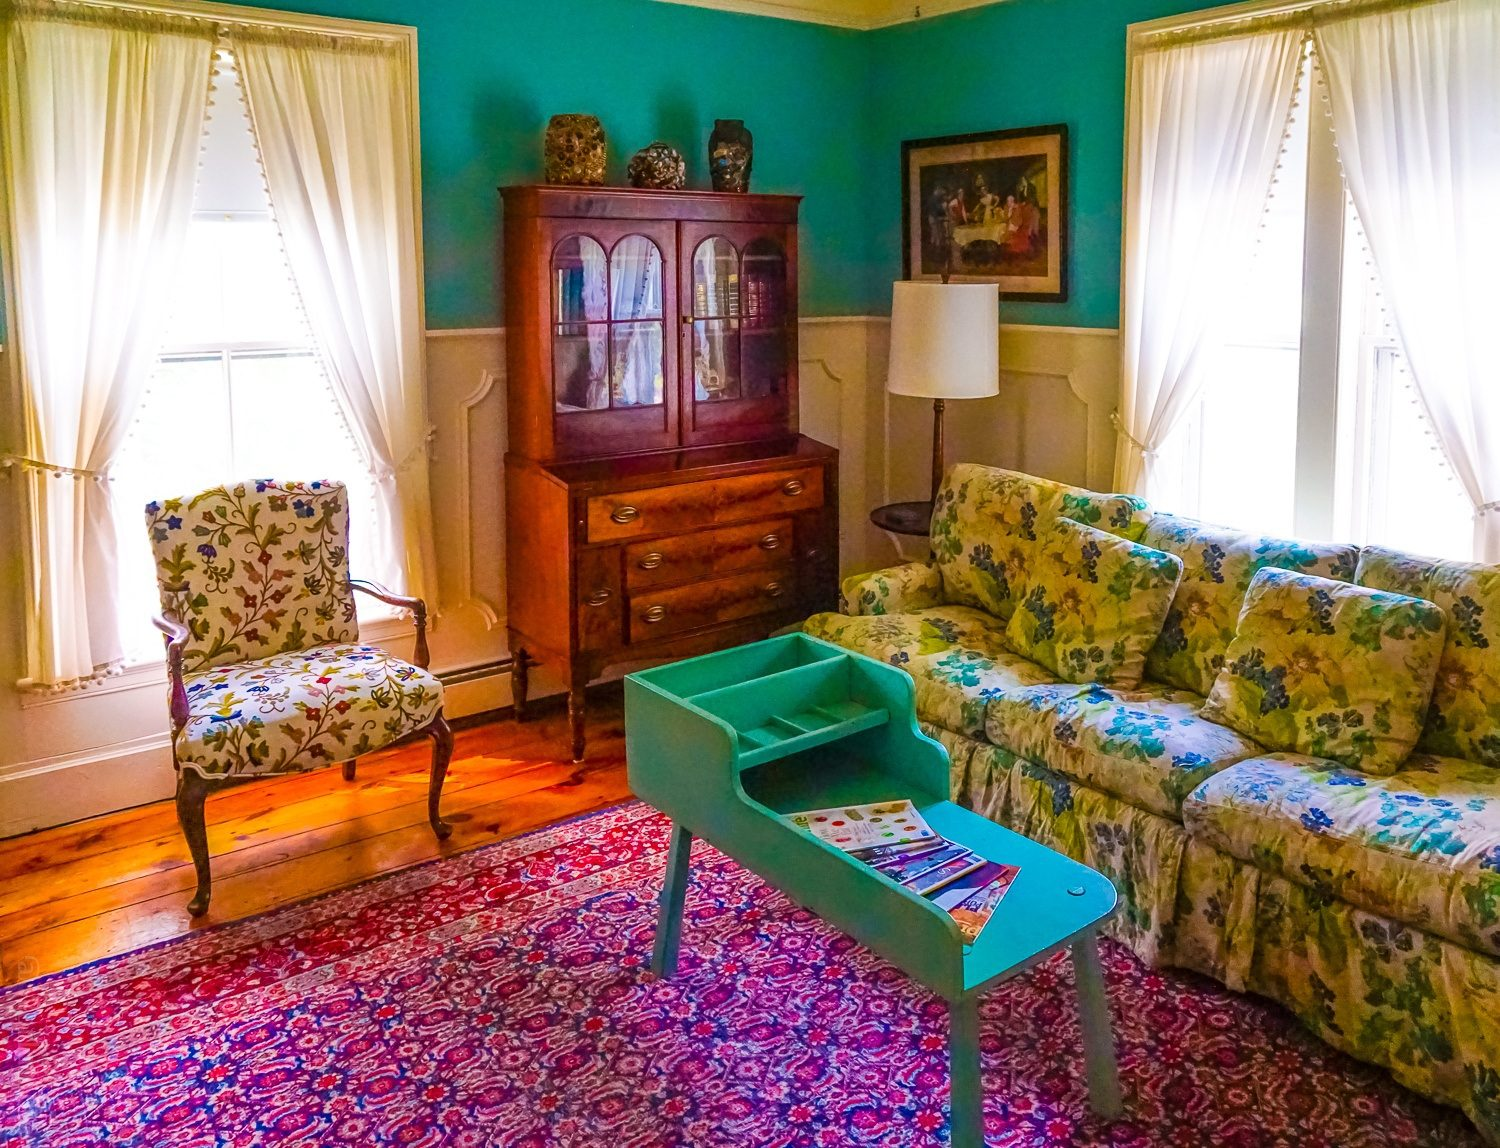 Red Lion Inn hotel carpets and shabby chic decor